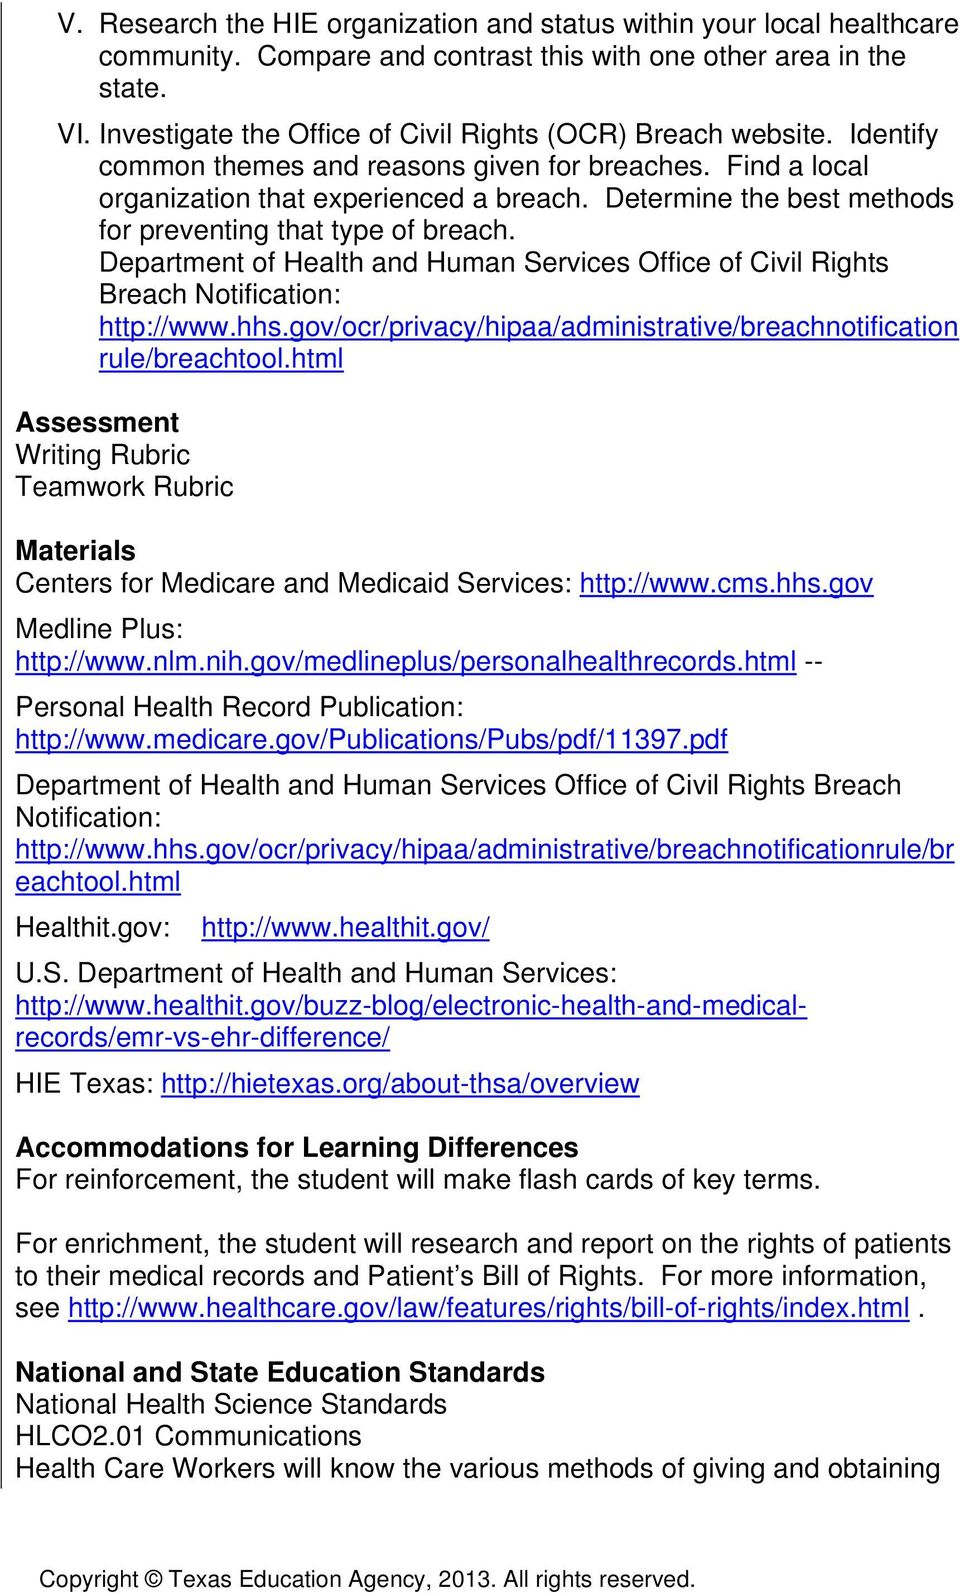 Determine the best methods for preventing that type of breach. Department of Health and Human Services Office of Civil Rights Breach Notification: http://www.hhs.